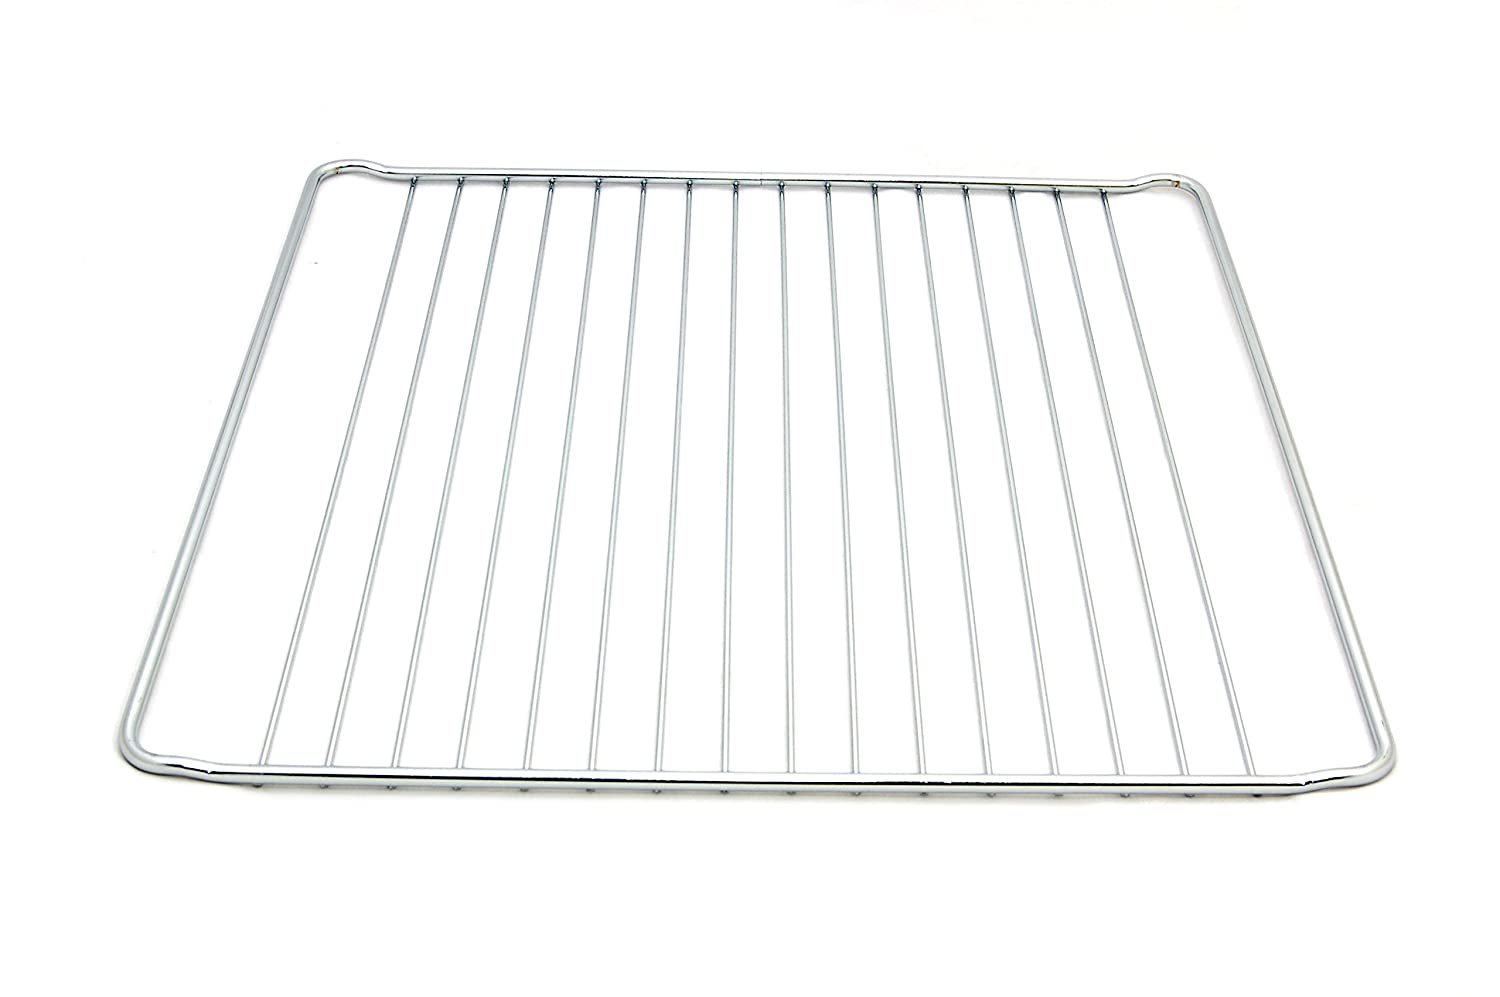 LAMONA Oven Grill Rack Shelf 365mmx397mm Beko BEKO 440100001